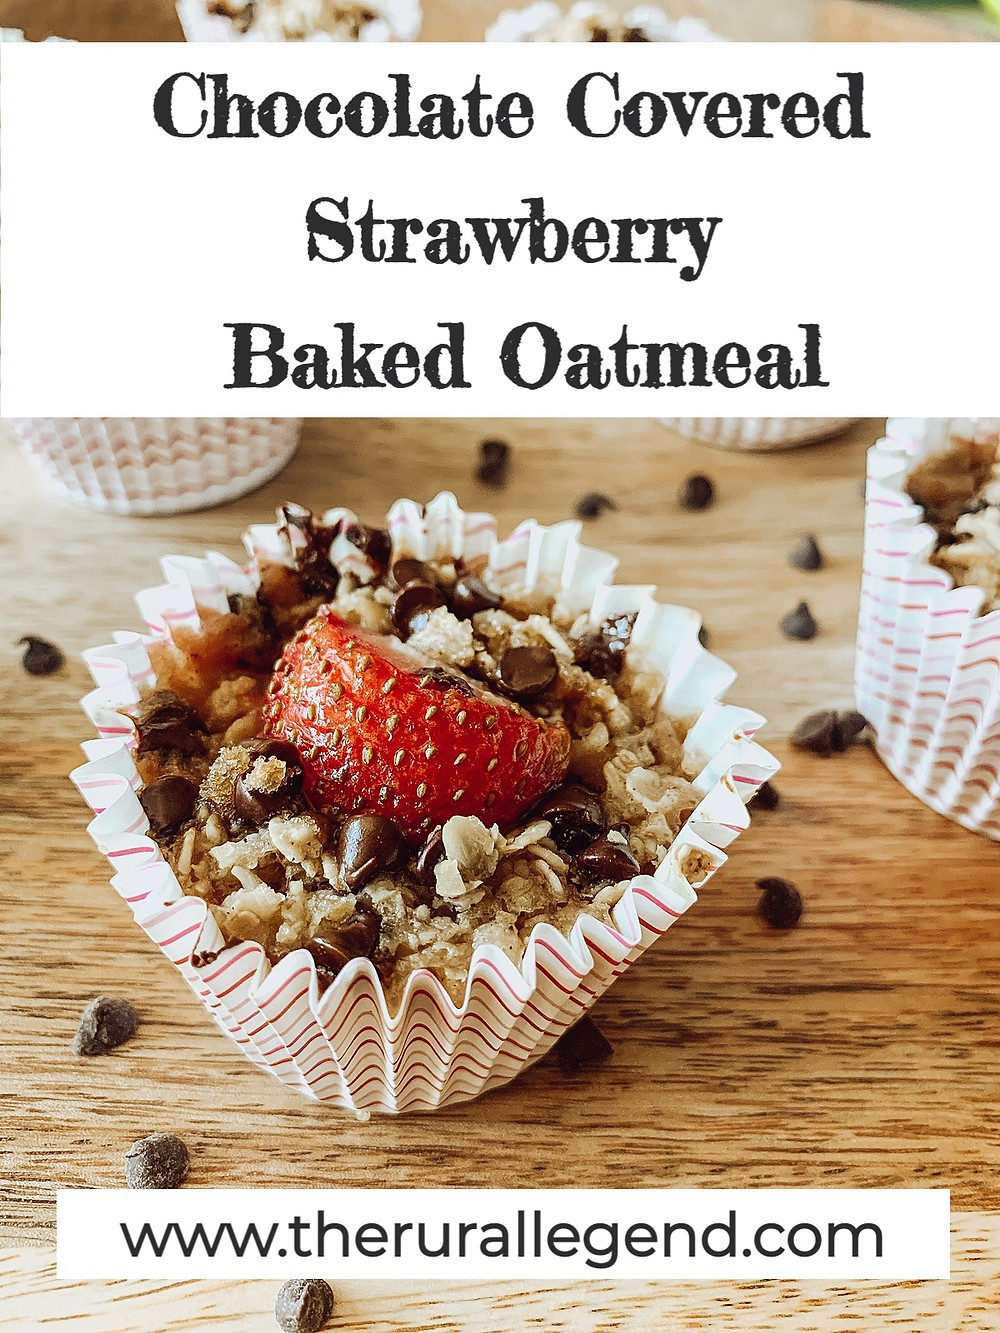 Baked oatmeal recipe, healthy breakfast recipe, chocolate covered strawberry recipe, valentine's day breakfast, valentine's day healthy recipes, valentine's day food, comfort food, comfort food breakfast, kid friendly recipes, family breakfast, family recipe, healthy chocolate recipe, kid's breakfast ideas, oatmeal recipe, valentine ideas, chocolate breakfast, healthy cupcake recipe, healthy muffin recipe, chocolate covered strawberry baked oatmeal, the rural legend